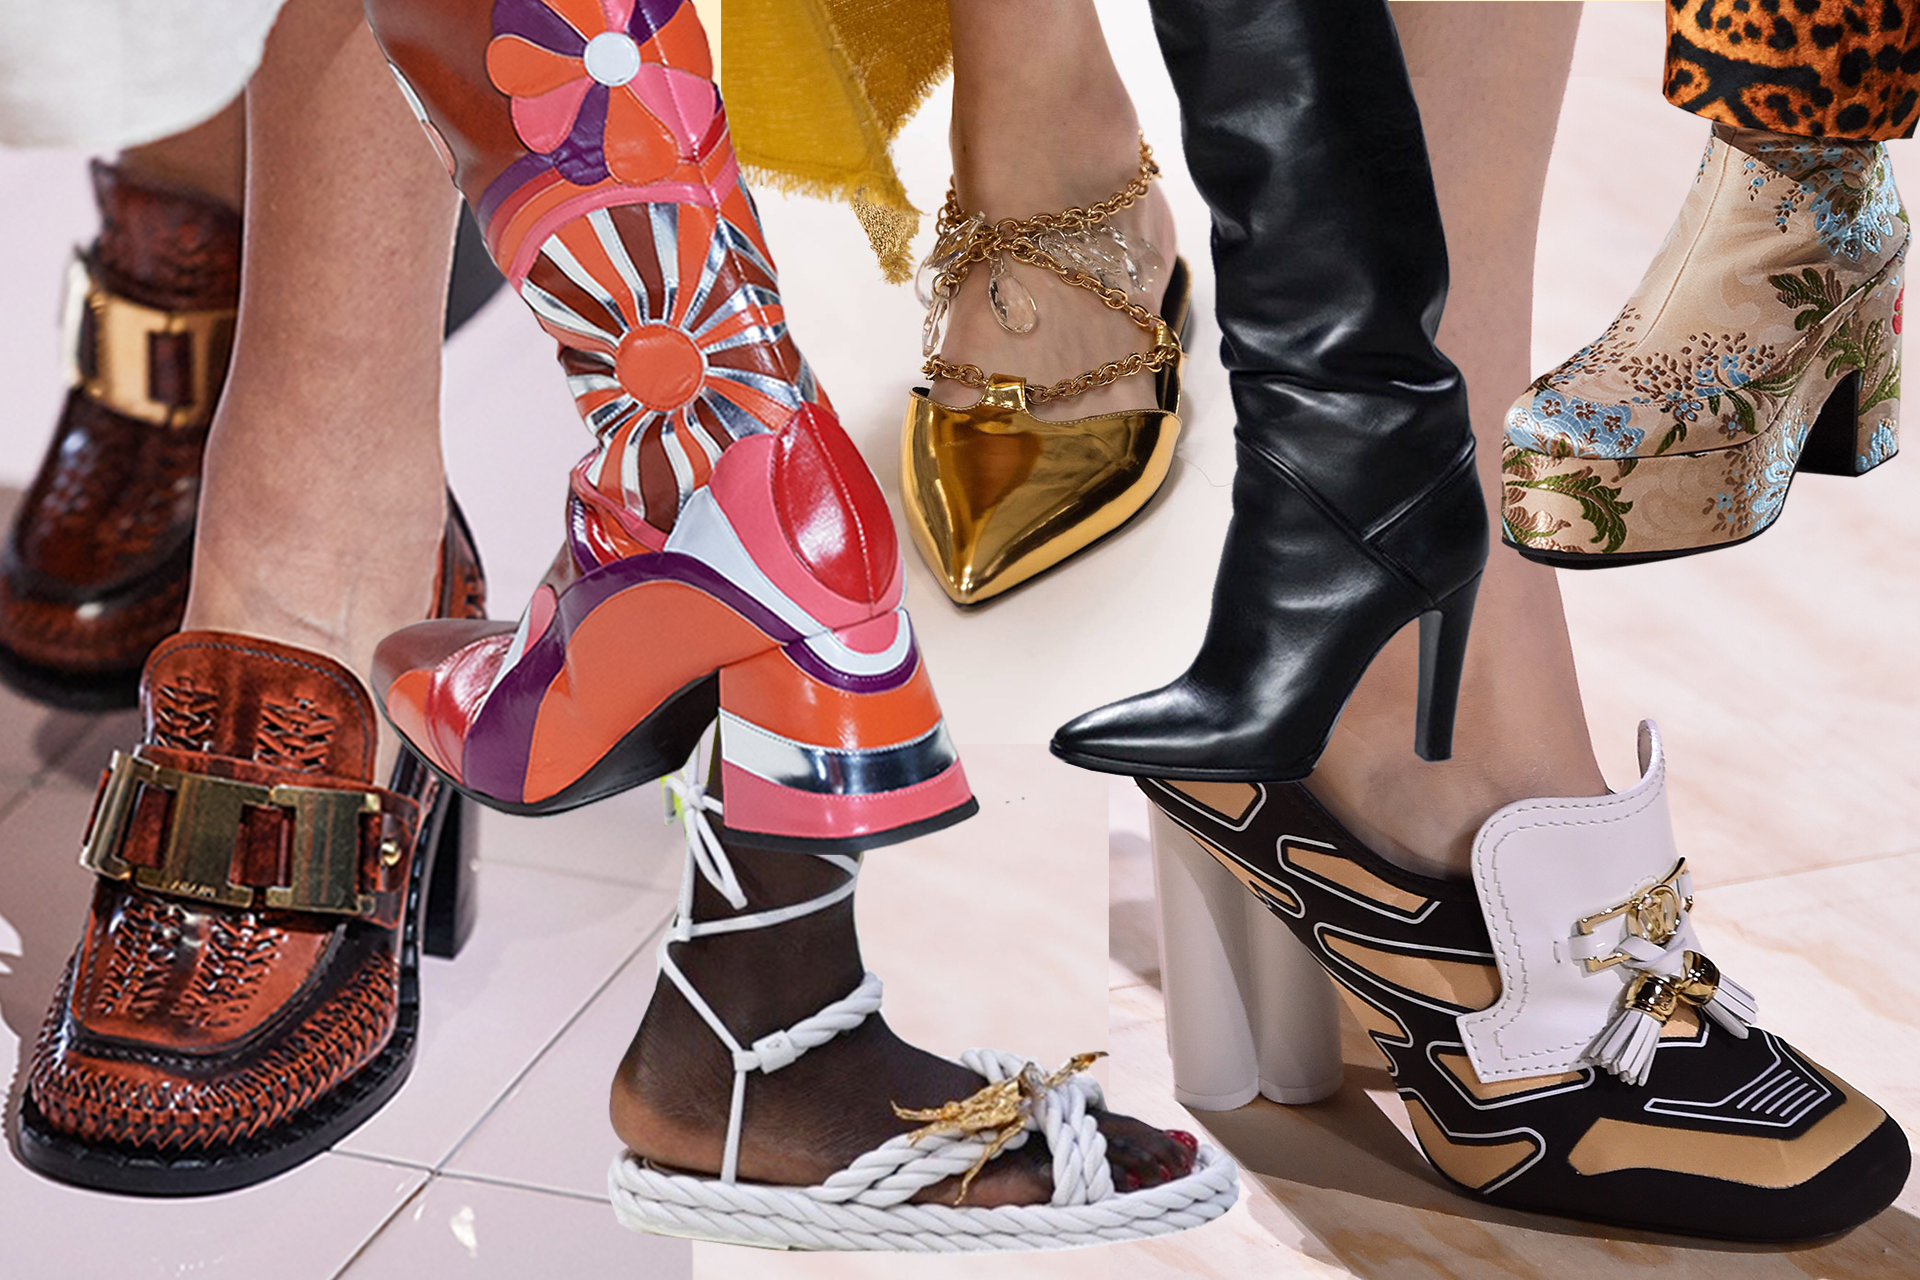 Shop 6 Hit Shoe Trends for spring 2021 Right Now